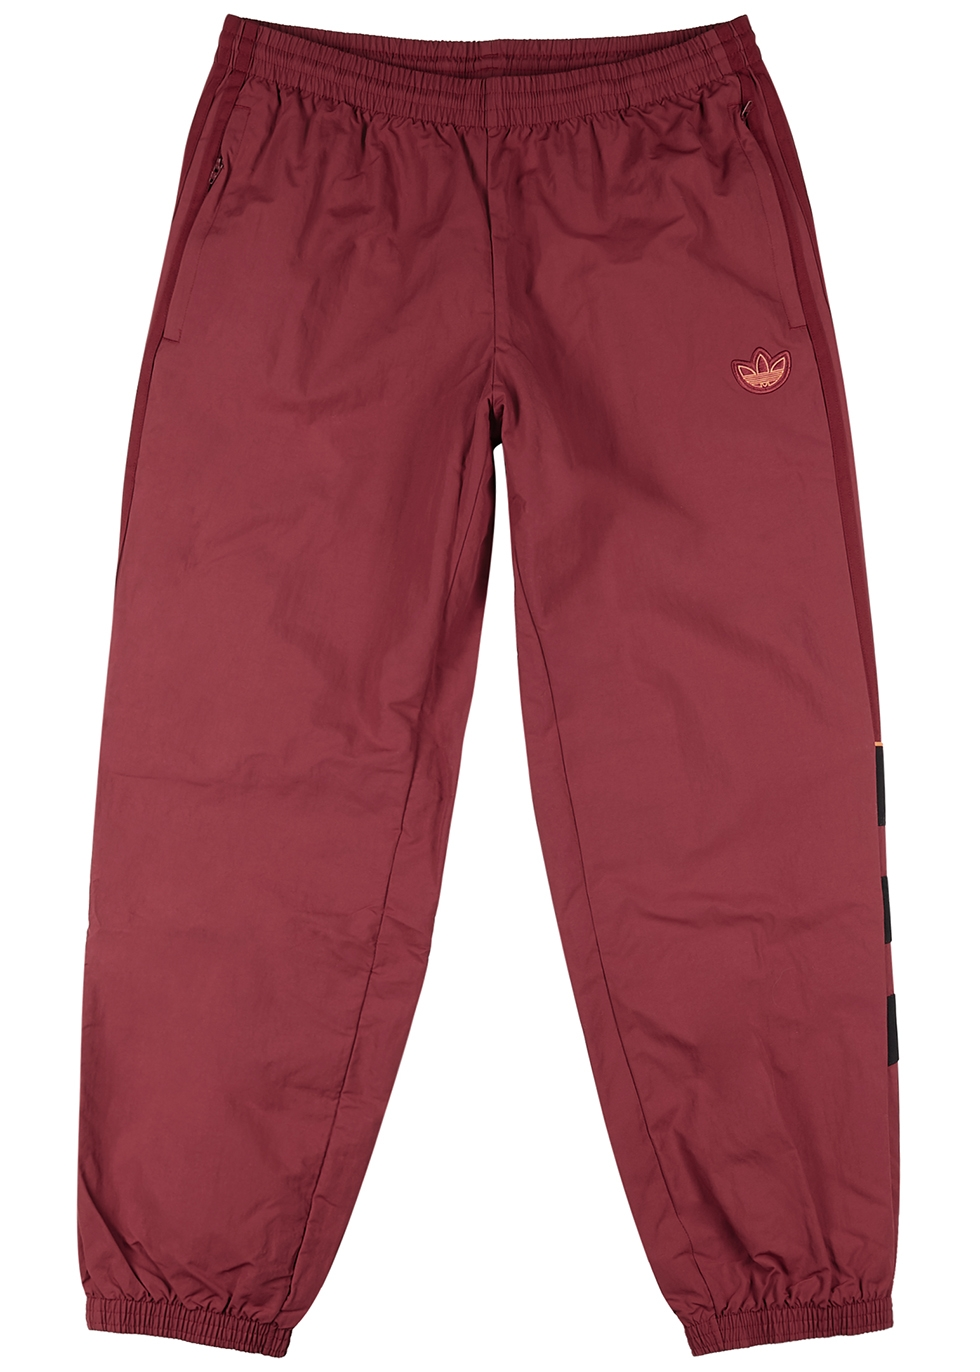 BLNT 96 dark red shell sweatpants